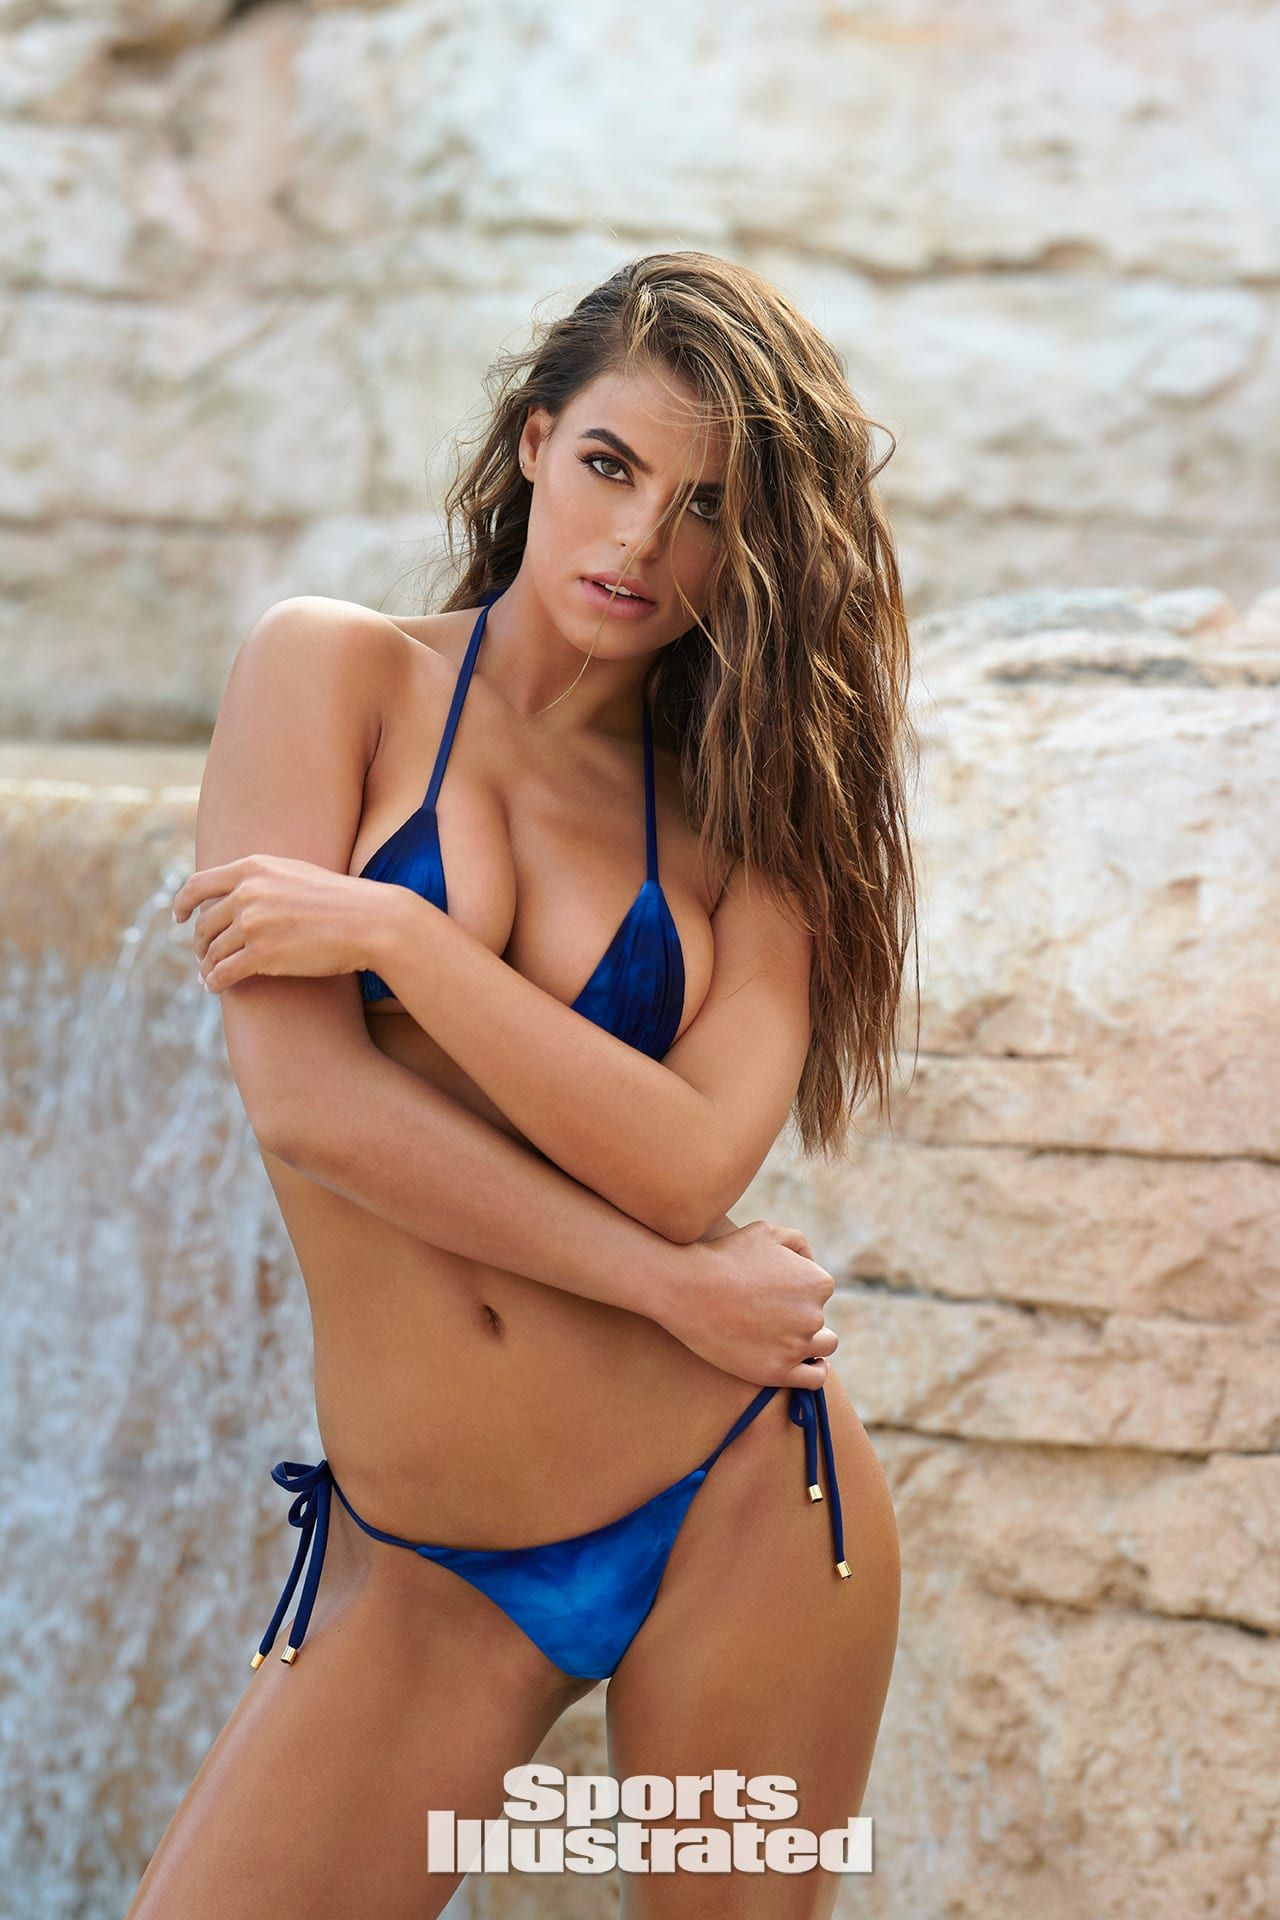 Idea By Junkitt On Sports Illustrated In 2020 Swimsuits Sports